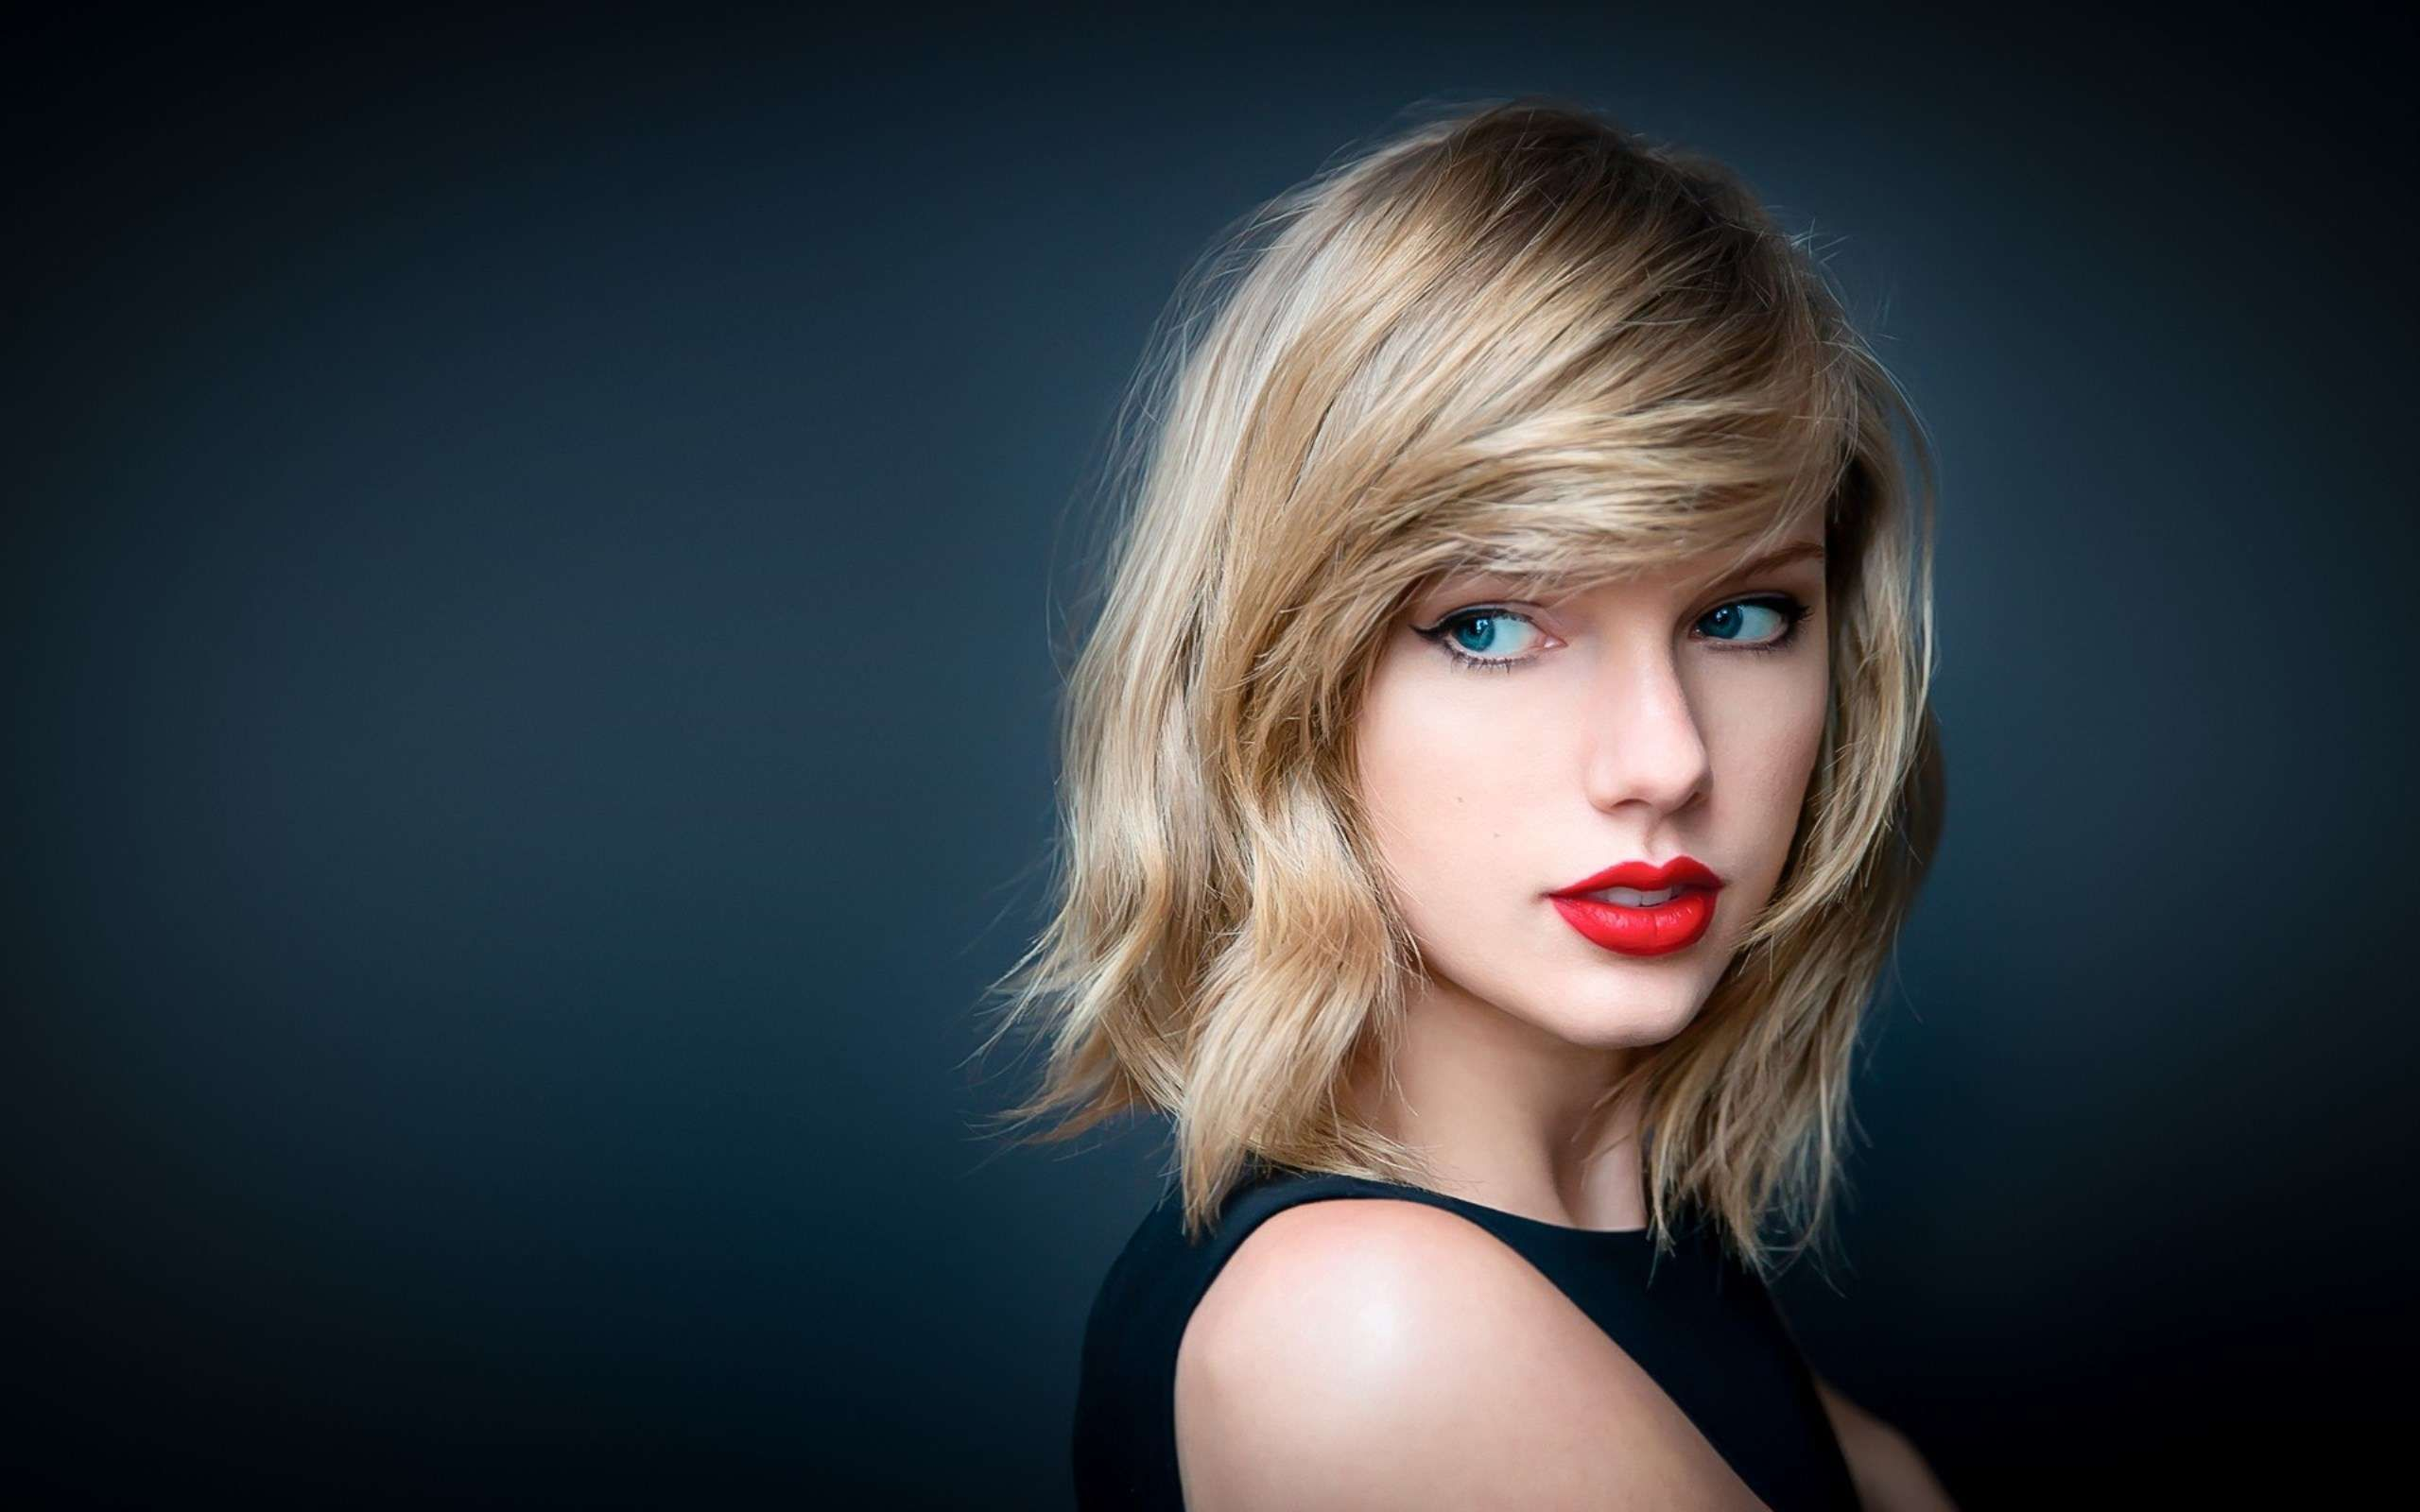 Taylor Swift Wallpapers Top Free Taylor Swift Backgrounds